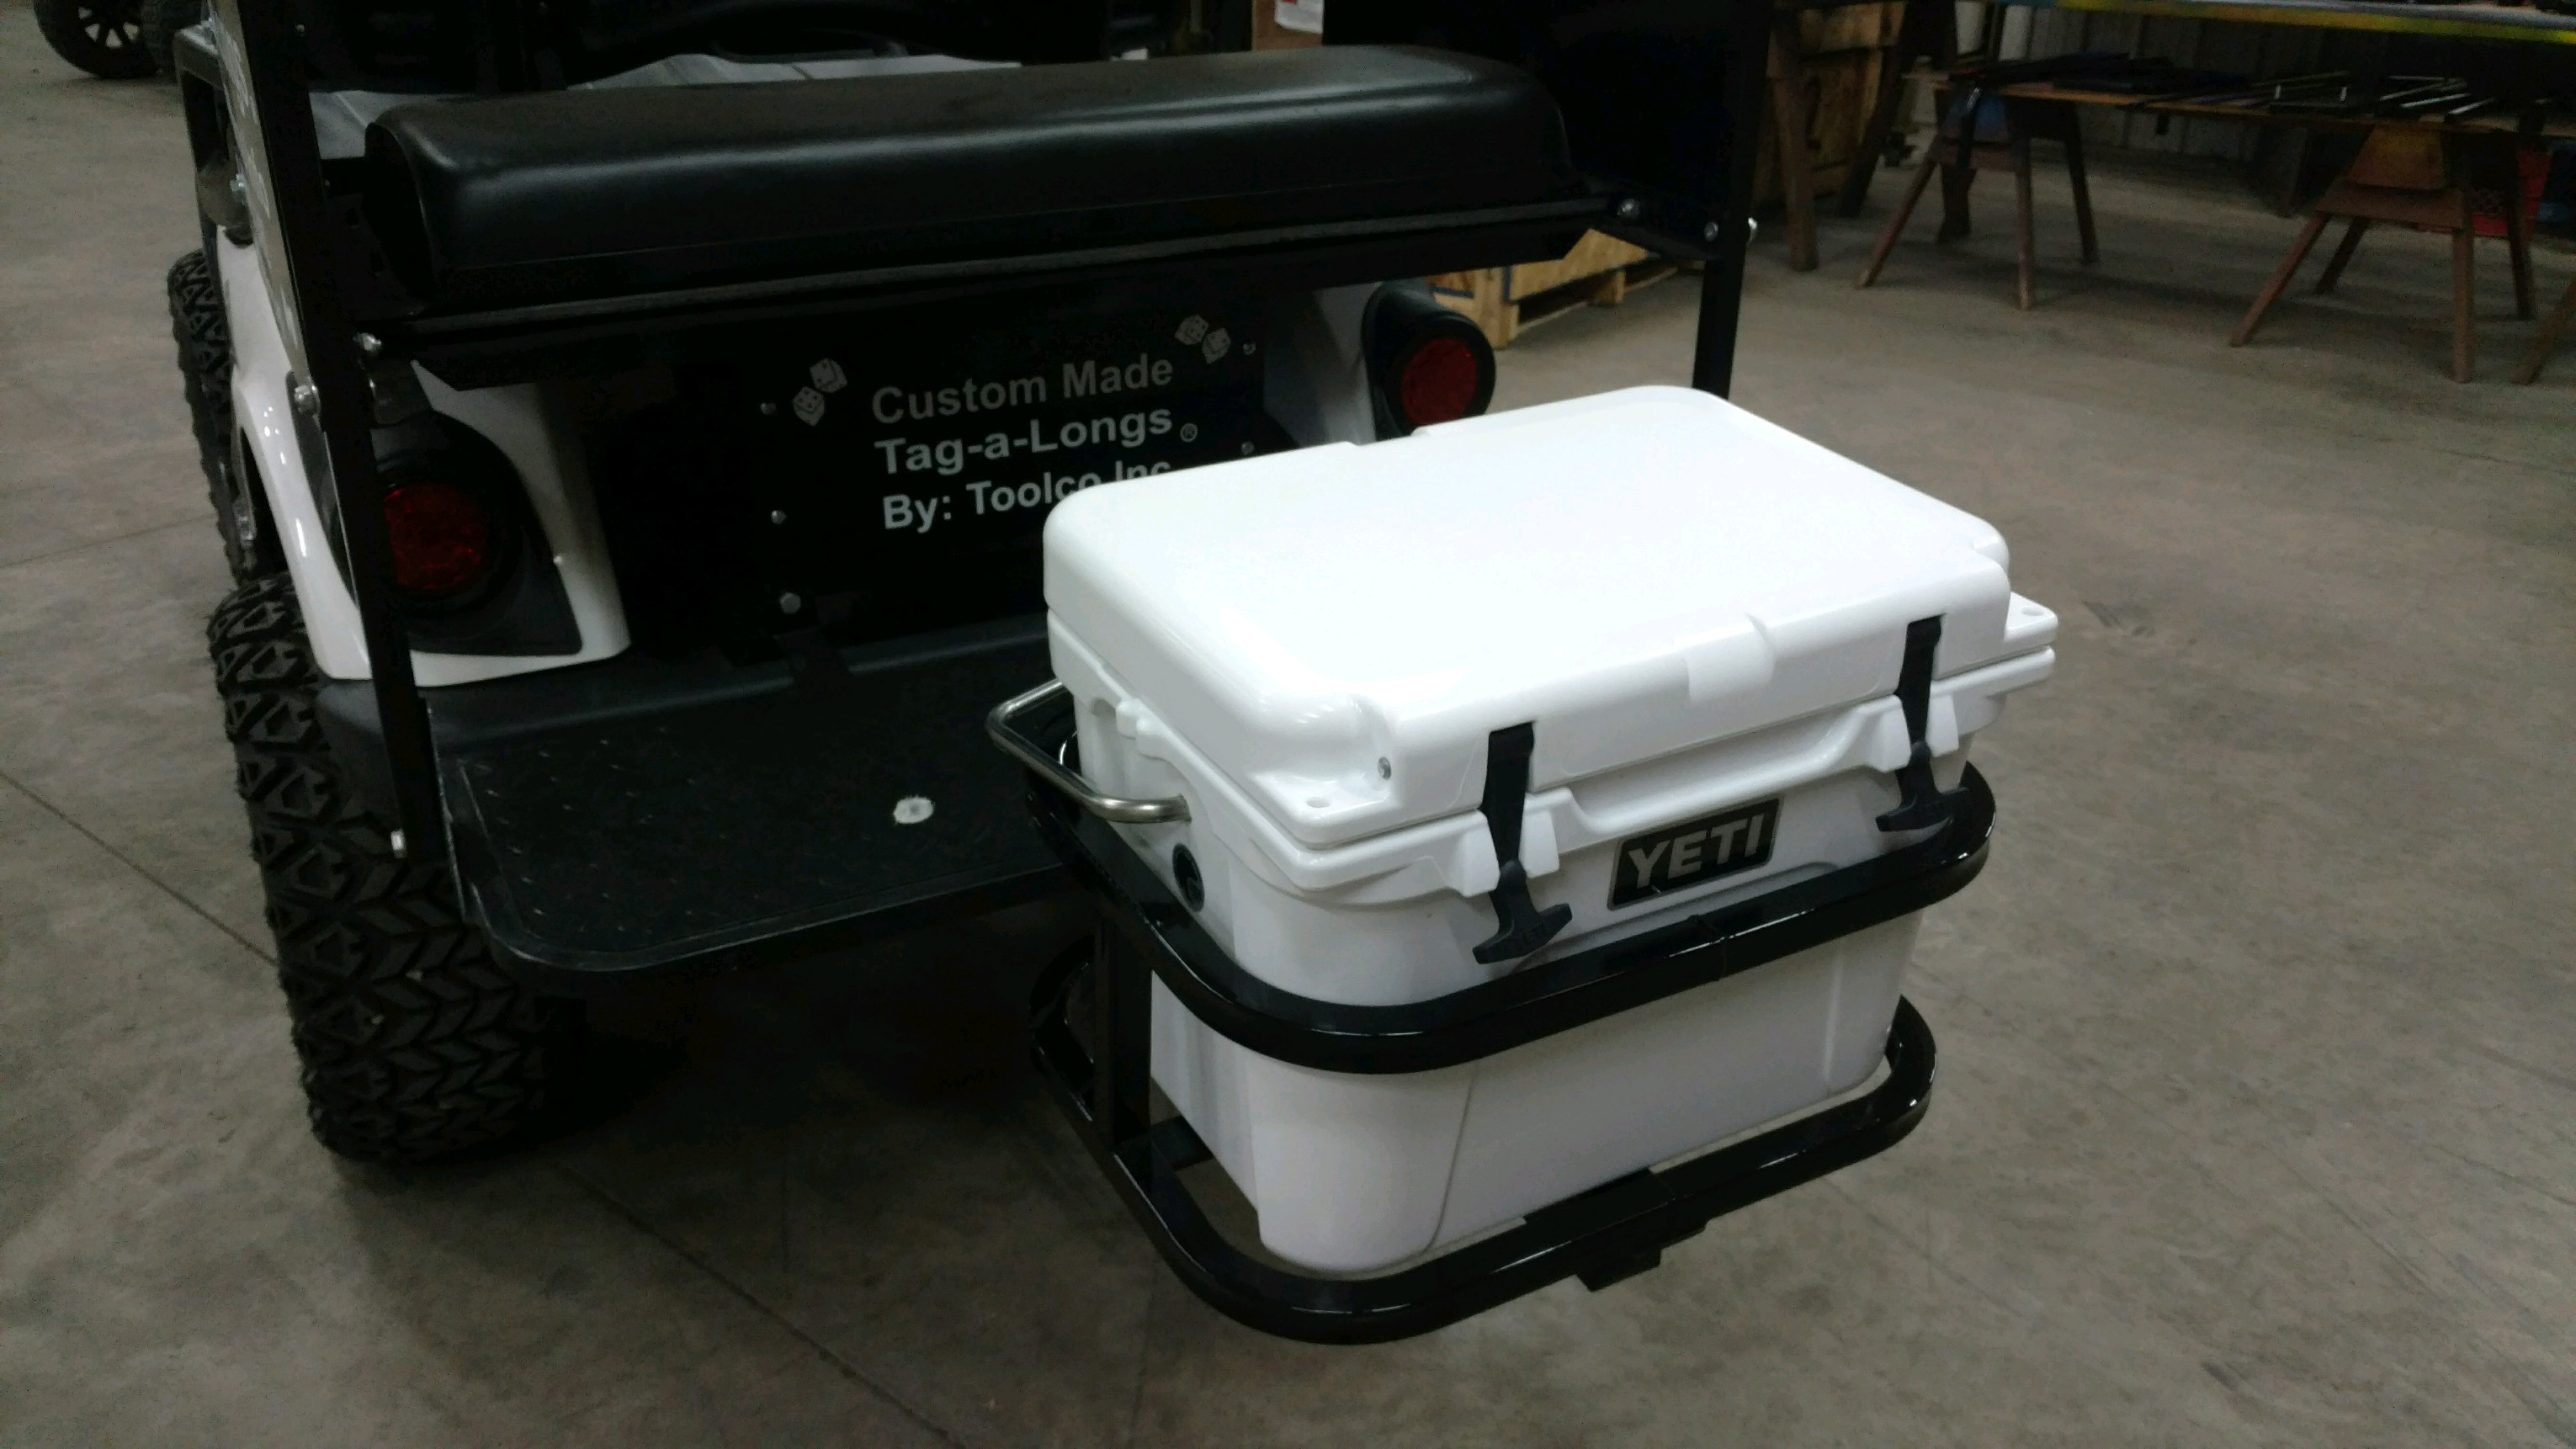 RTIC 45 Hitch Cooler Carrier